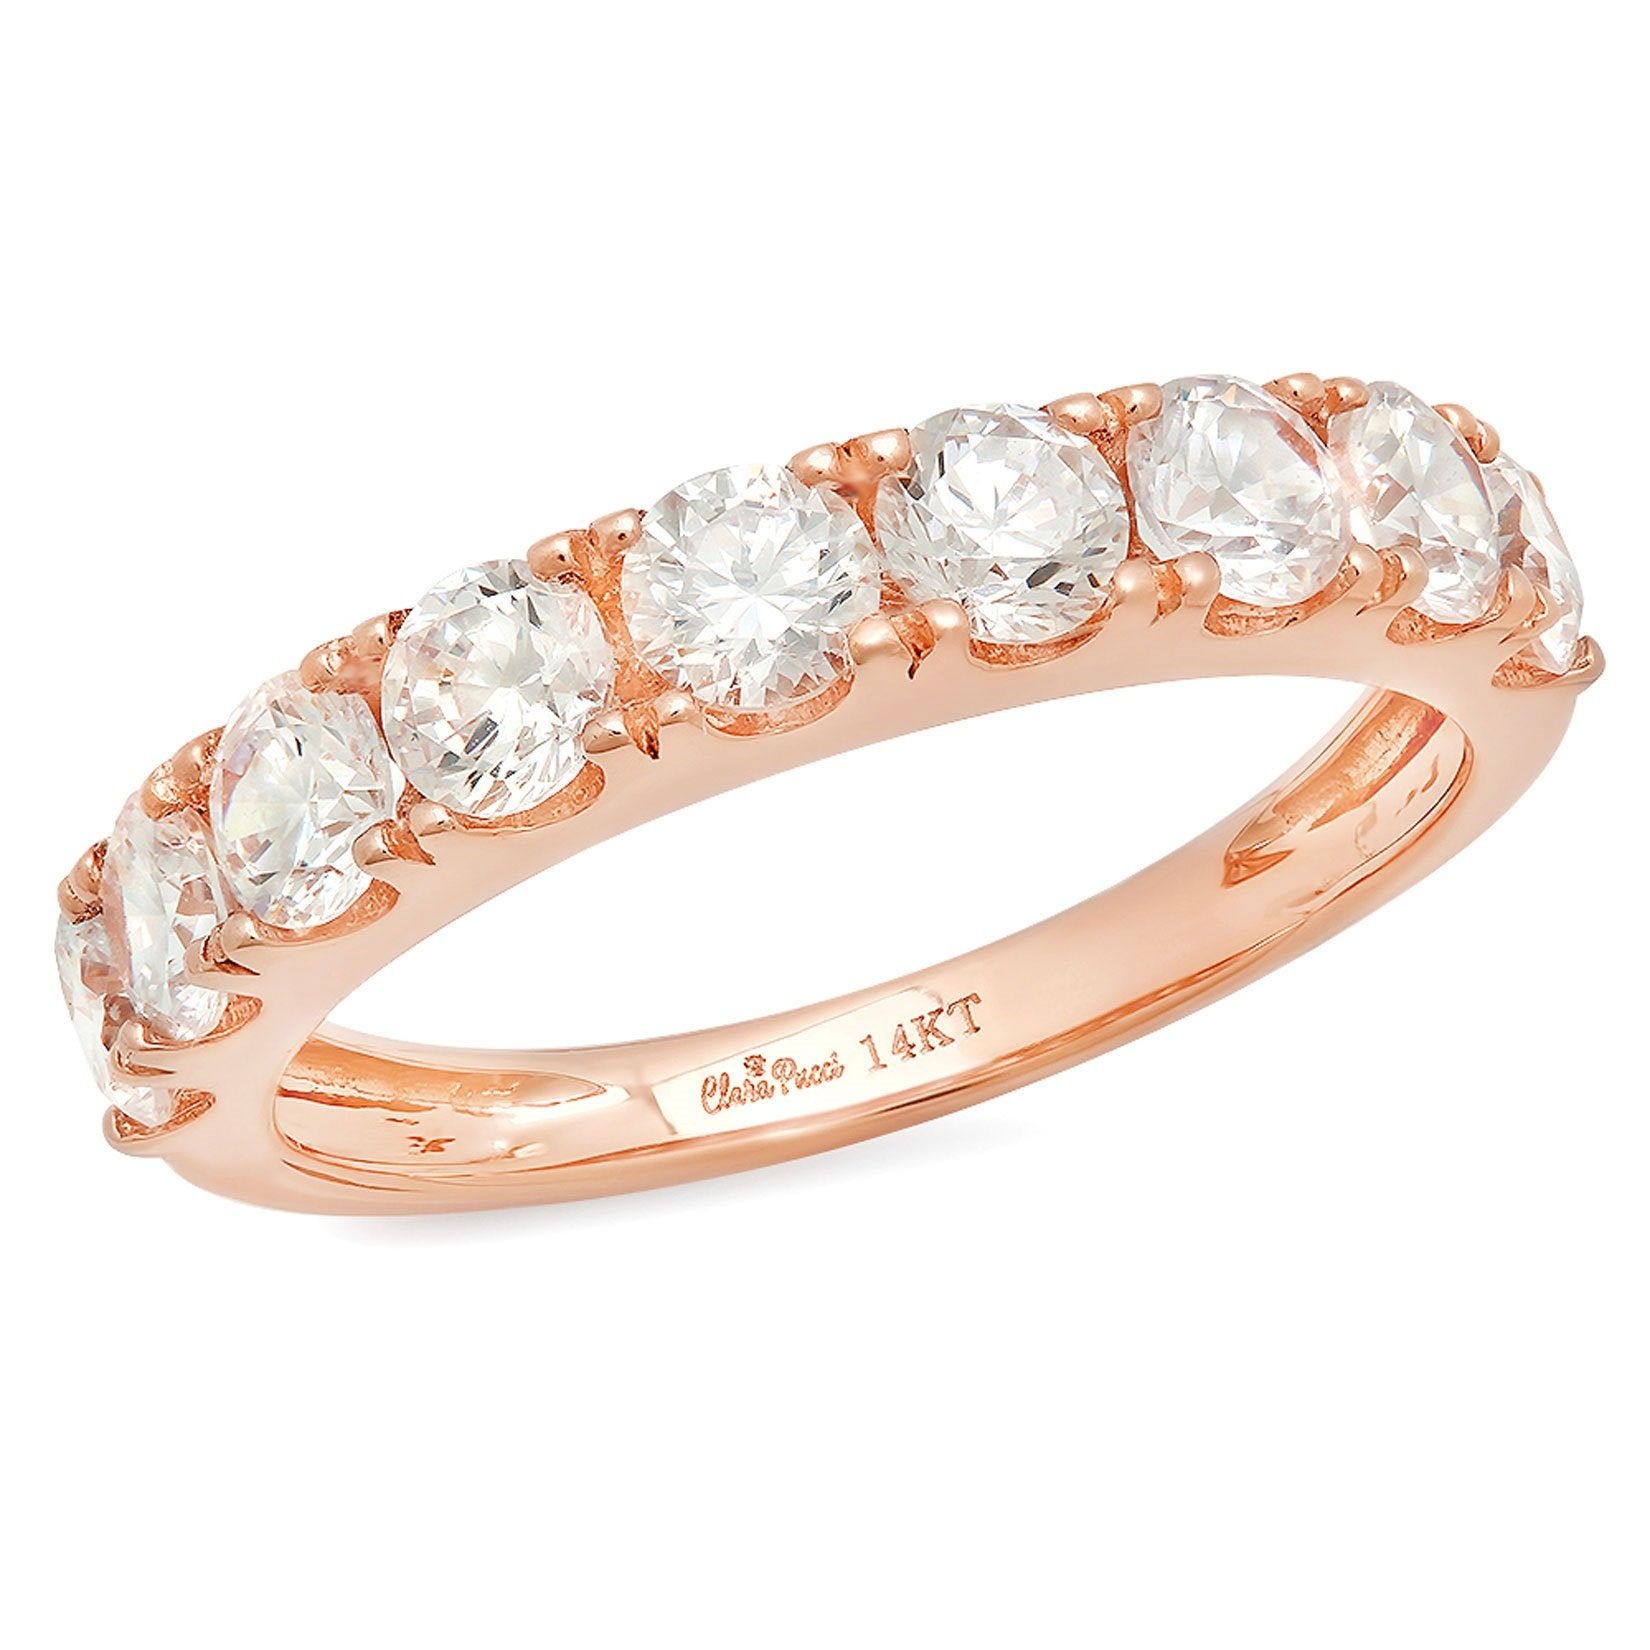 1.7 Ct Round Cut Pave Set Wedding Engagement Band Bridal Anniversary Ring 14Kt Rose Gold, Size 3.75, Clara Pucci